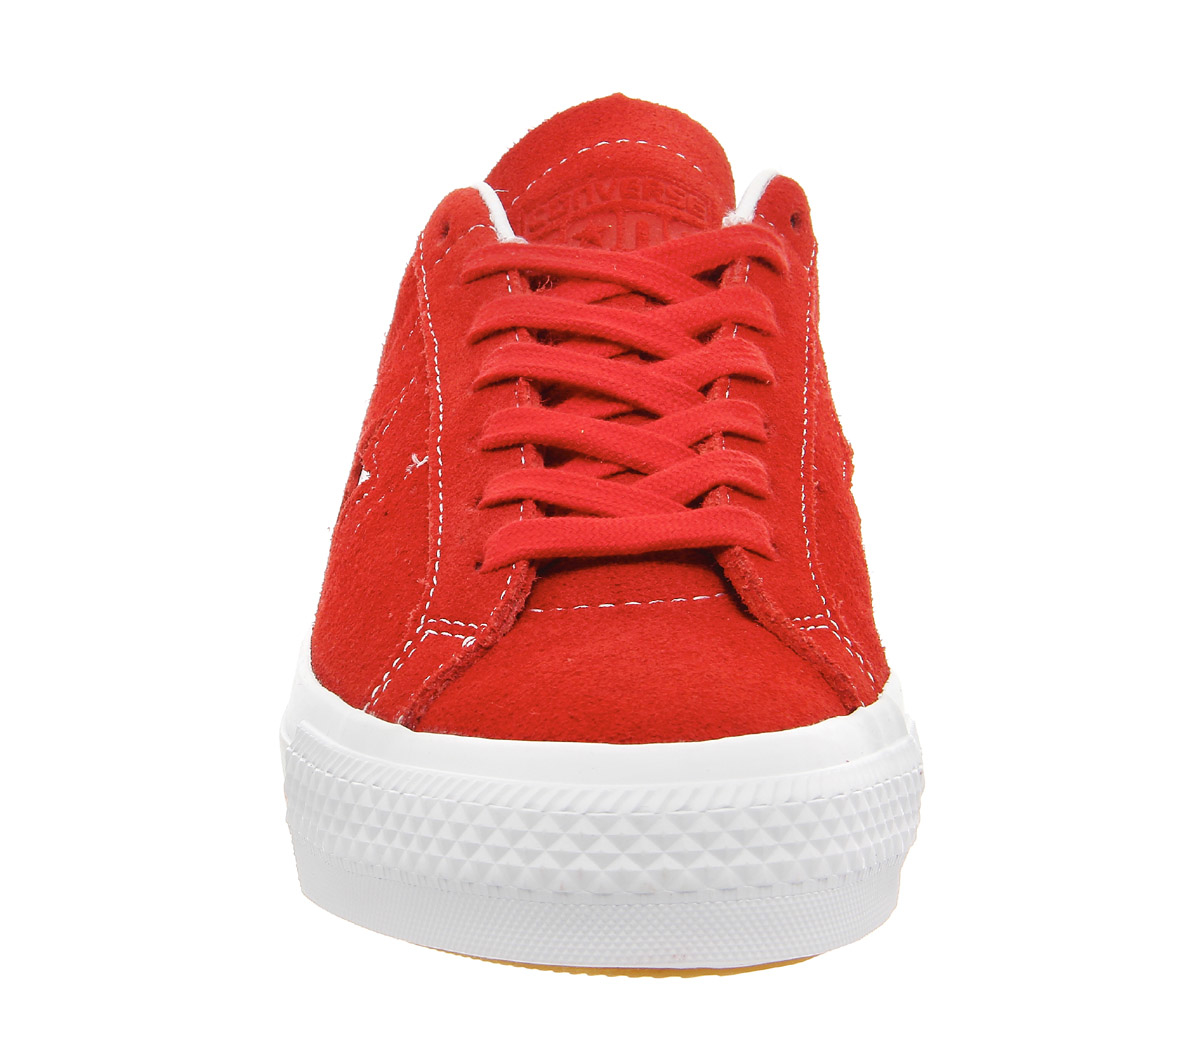 Converse One Star Skate In Red For Men Lyst